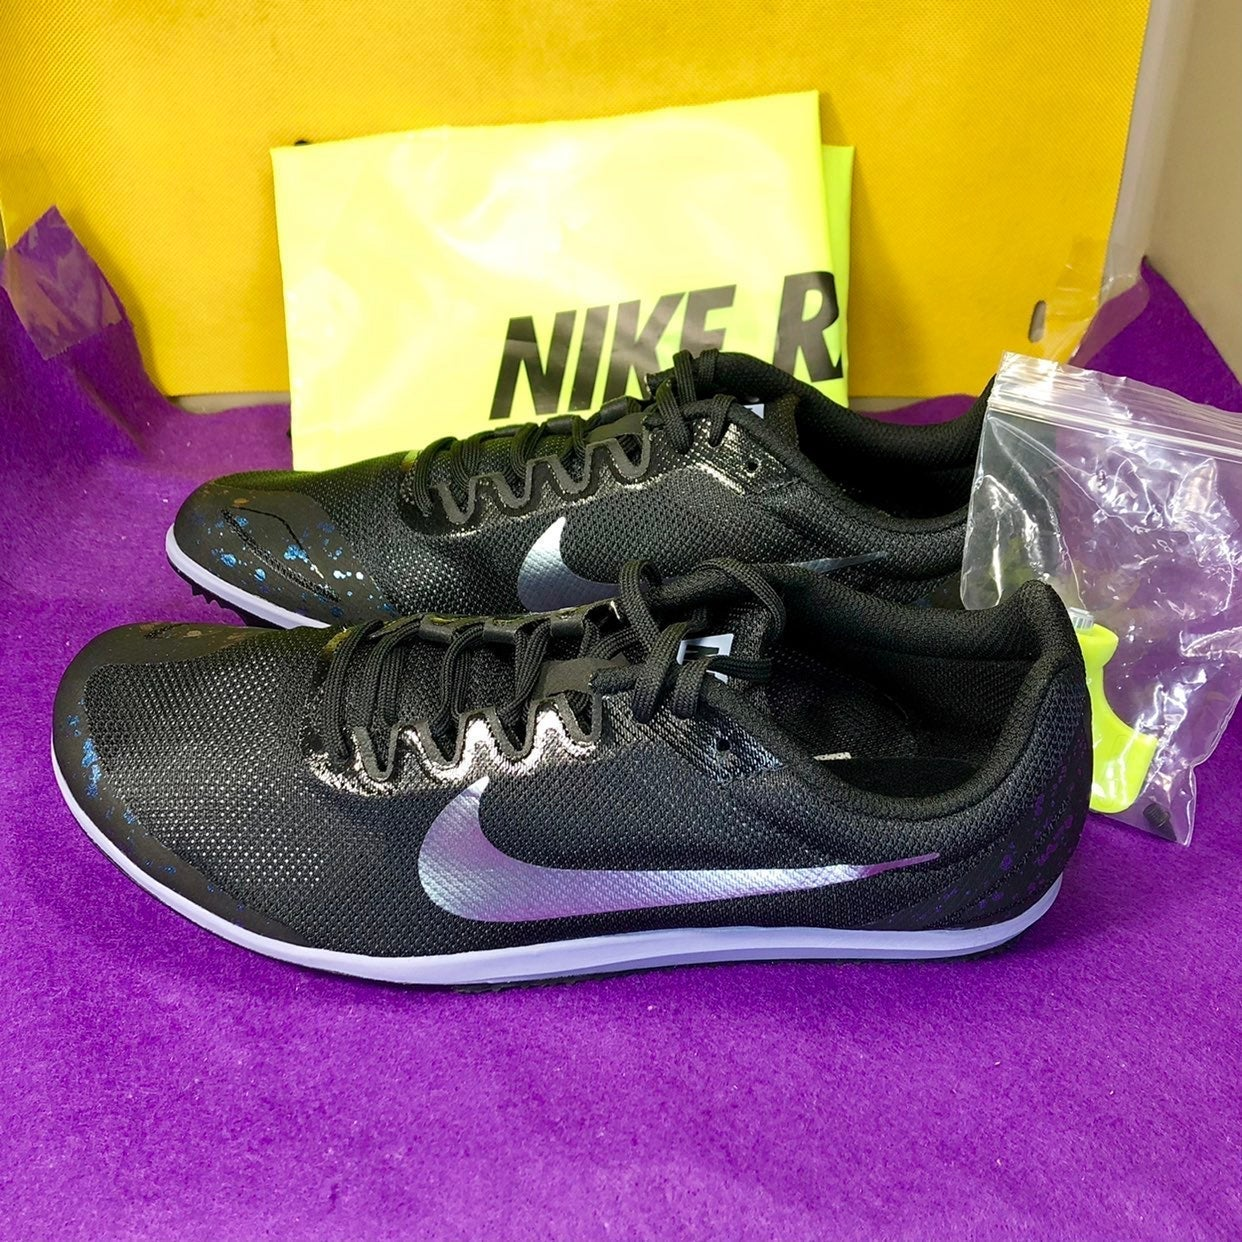 Nike Zoom Rival D 10 Distance Track Shoe